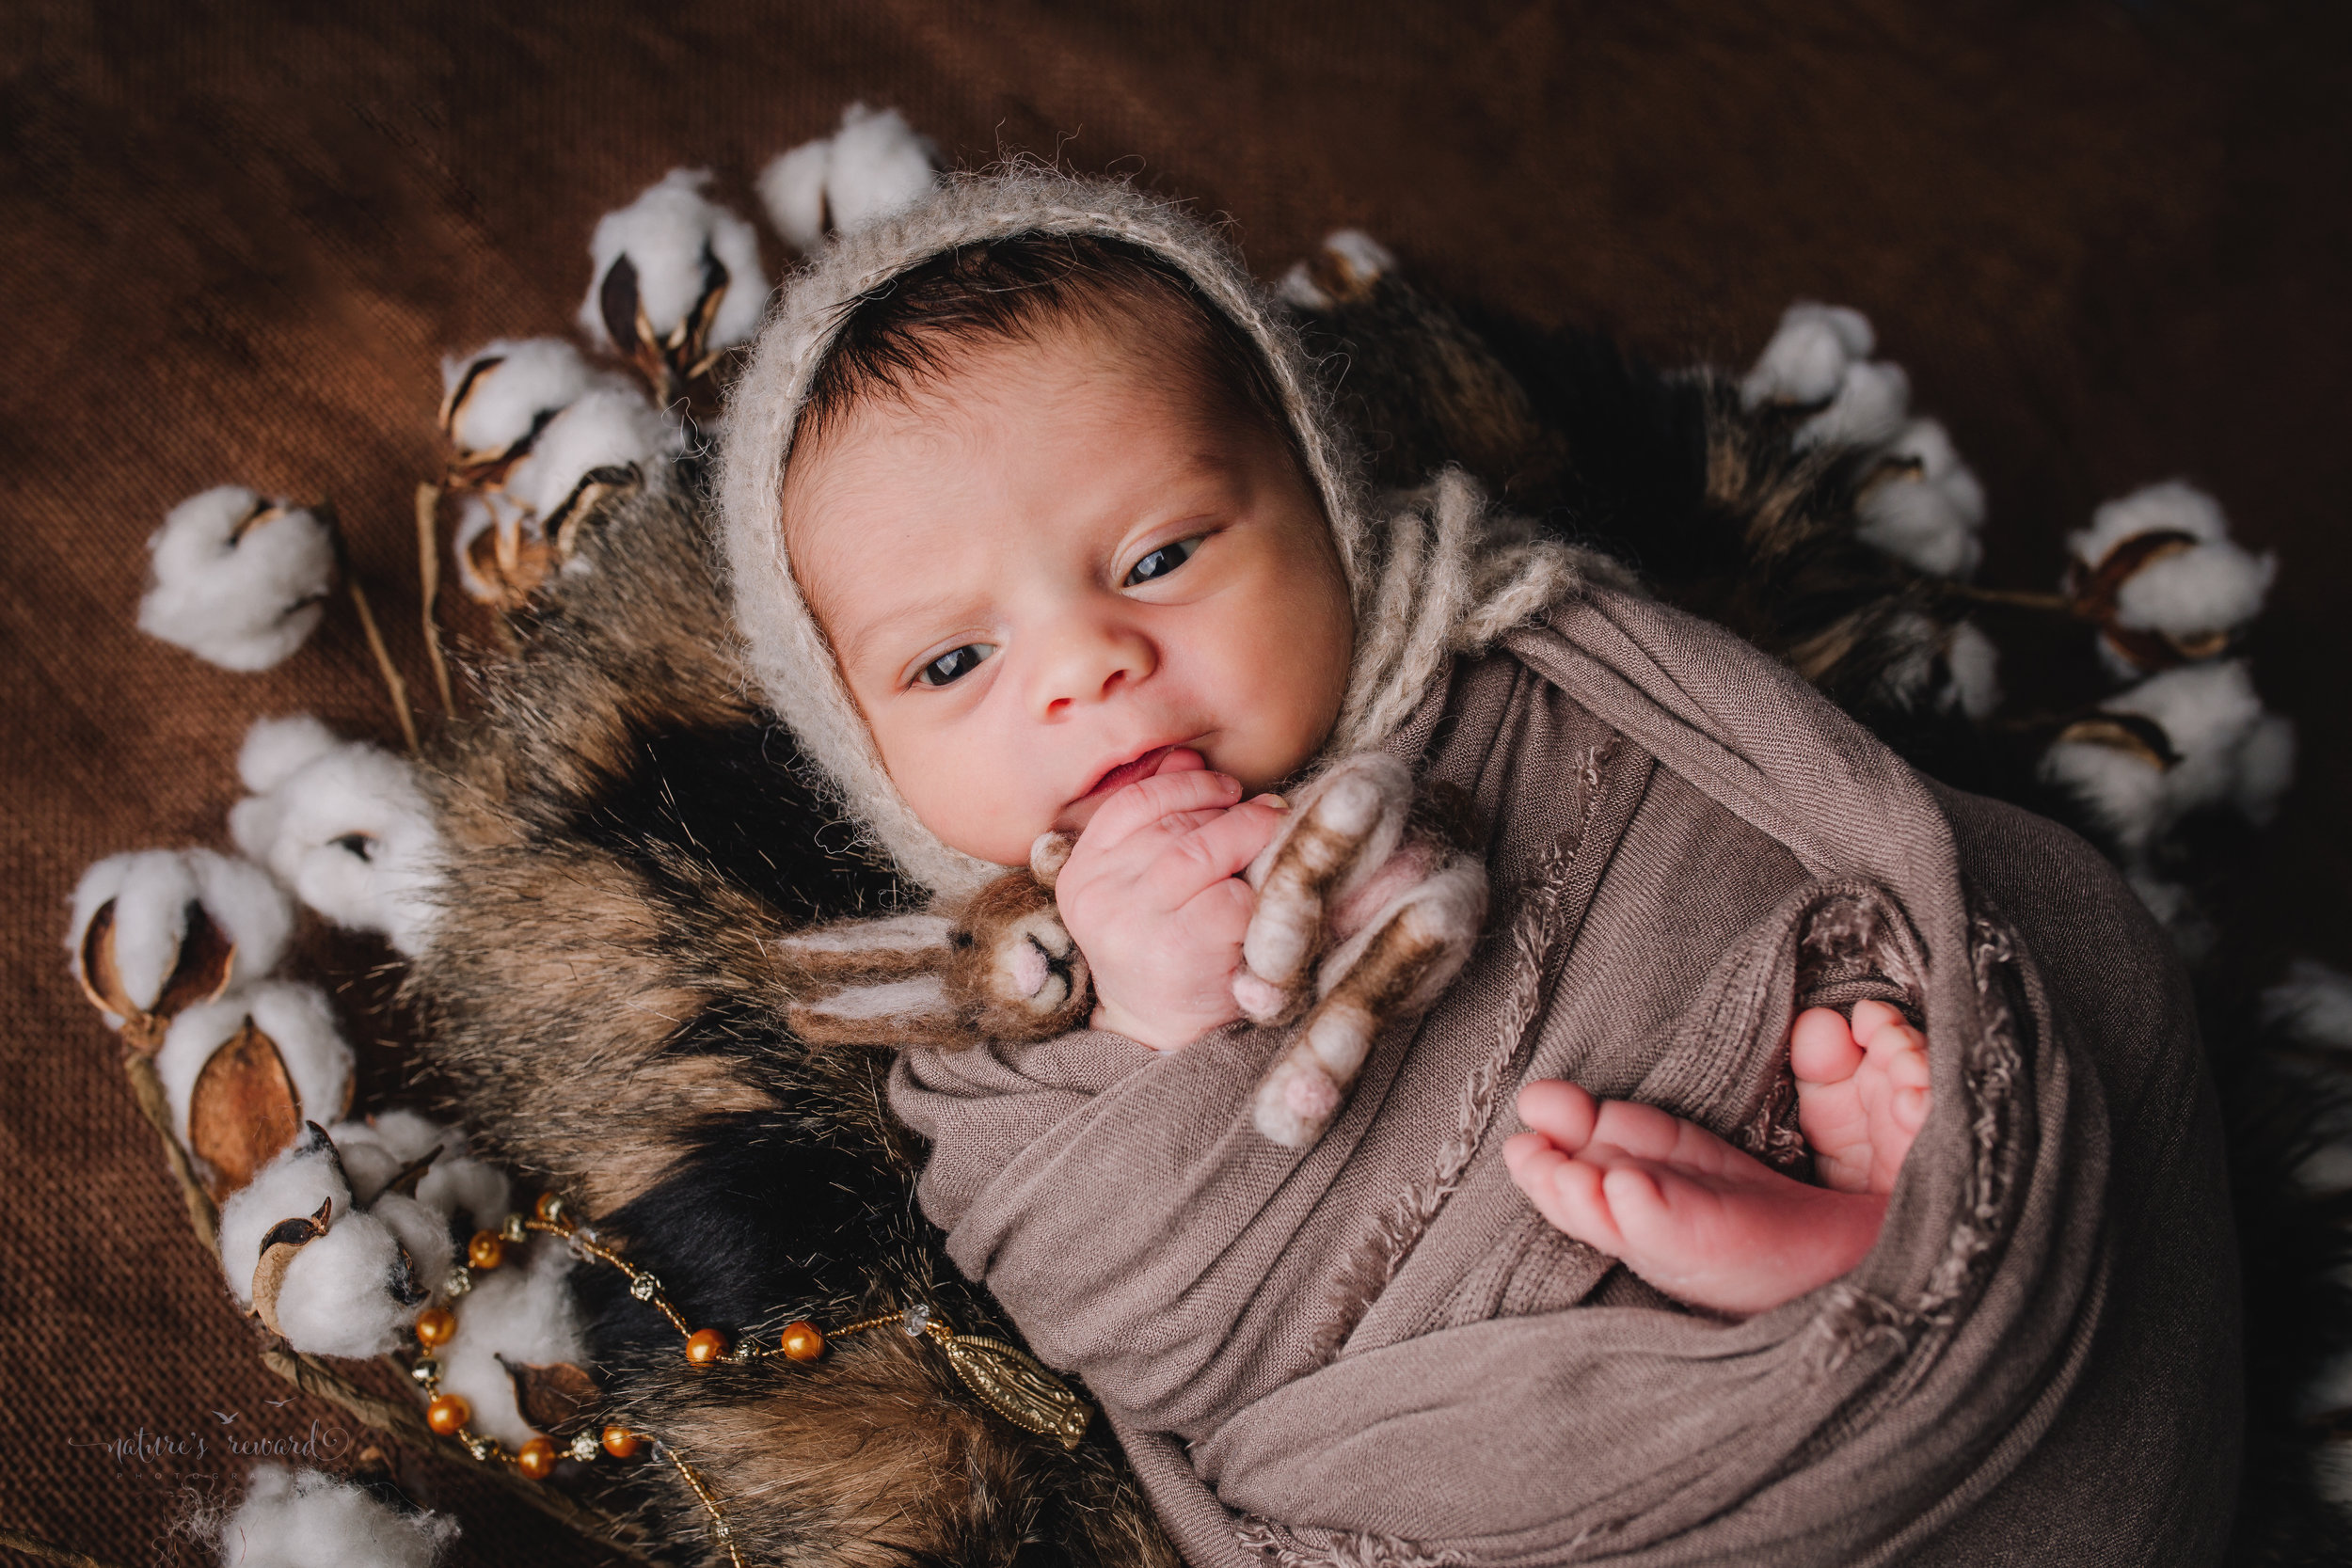 Newborn Baby boy swaddled in tan while laying on a bed of brown and black fur in a cotton blossom wreath wearing a tan bonnet holding a felt bunny laying next to a rosary - a portrait by Nature's Reward Photography